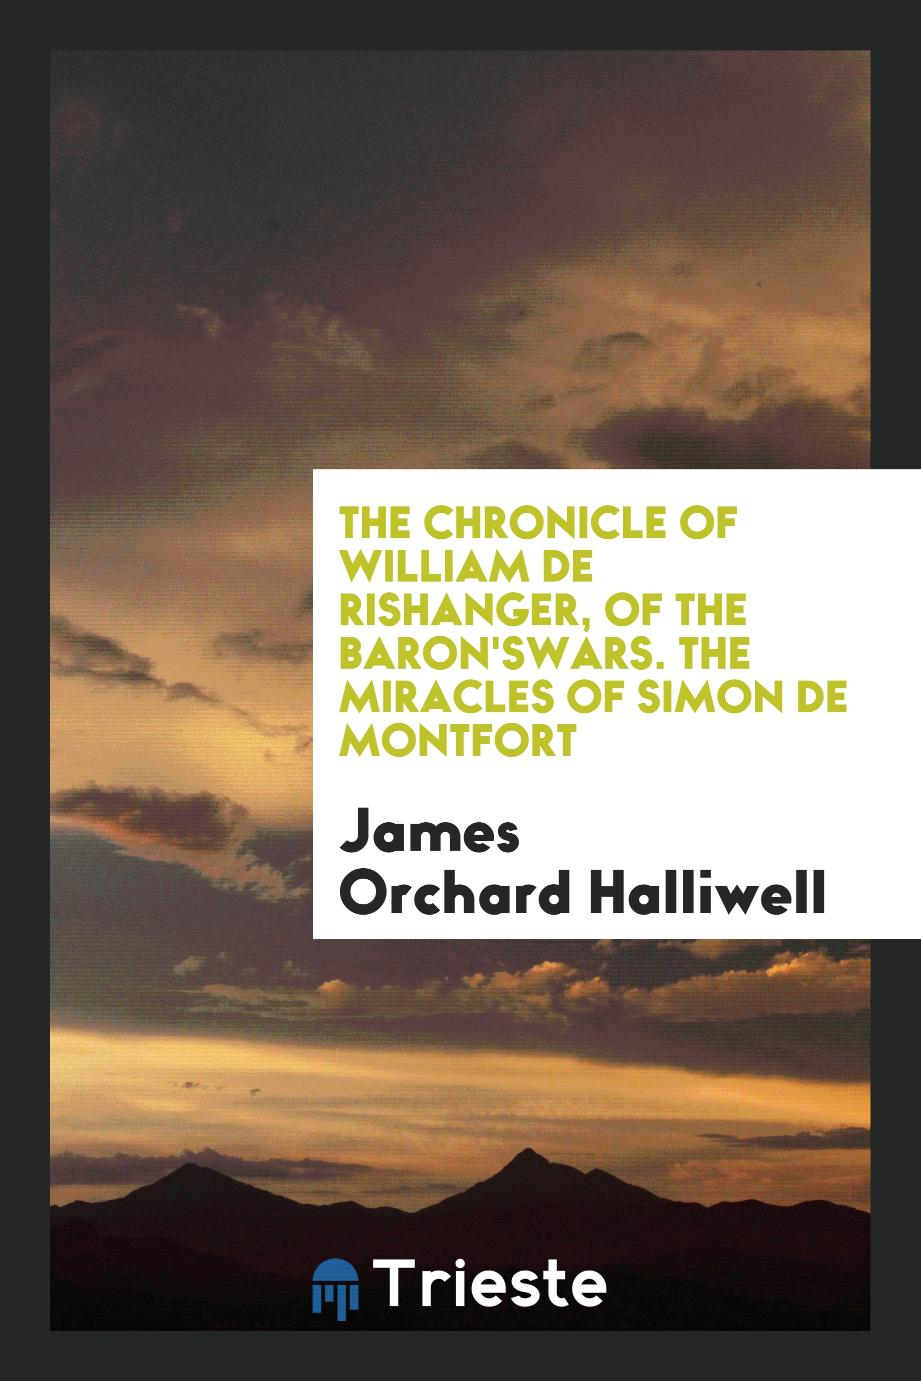 The Chronicle of William de Rishanger, of The Baron'sWars. The Miracles of Simon de Montfort